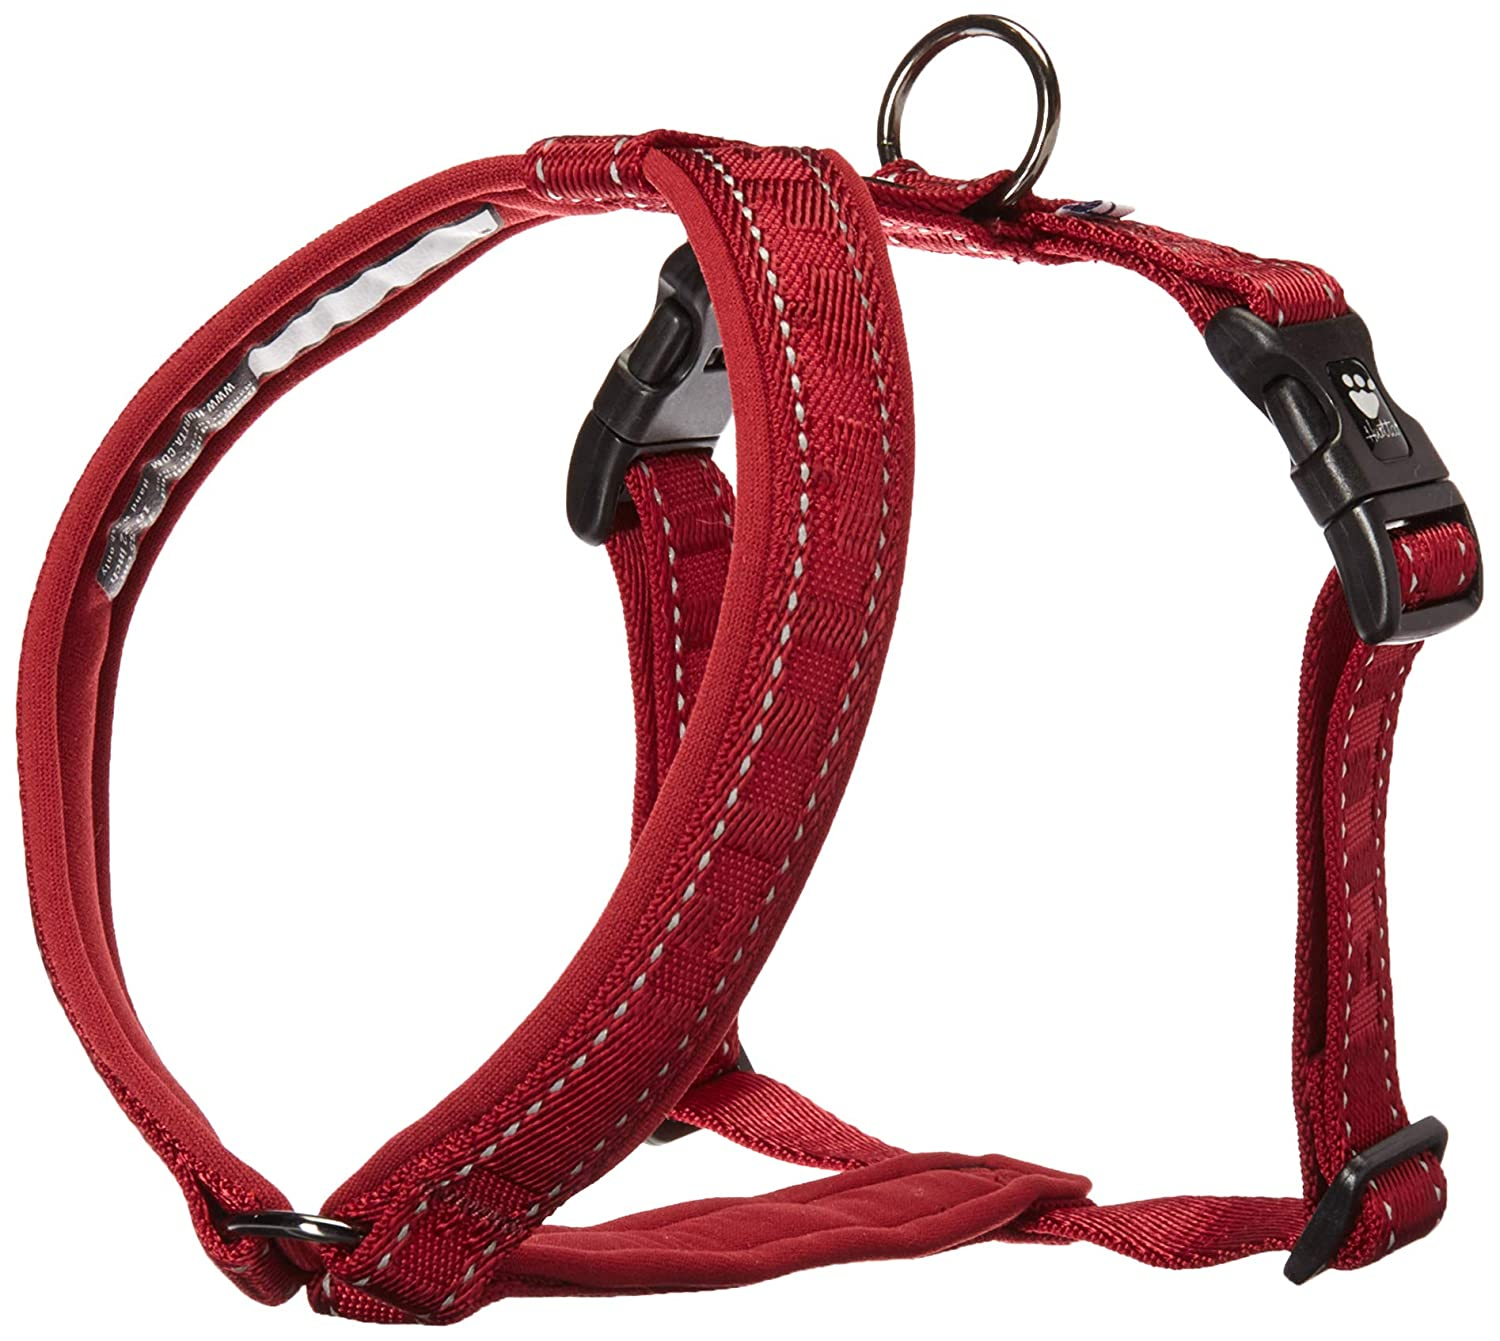 Lingon 1822 Hurtta Casual Padded Dog YHarness, Lingon, 32 in